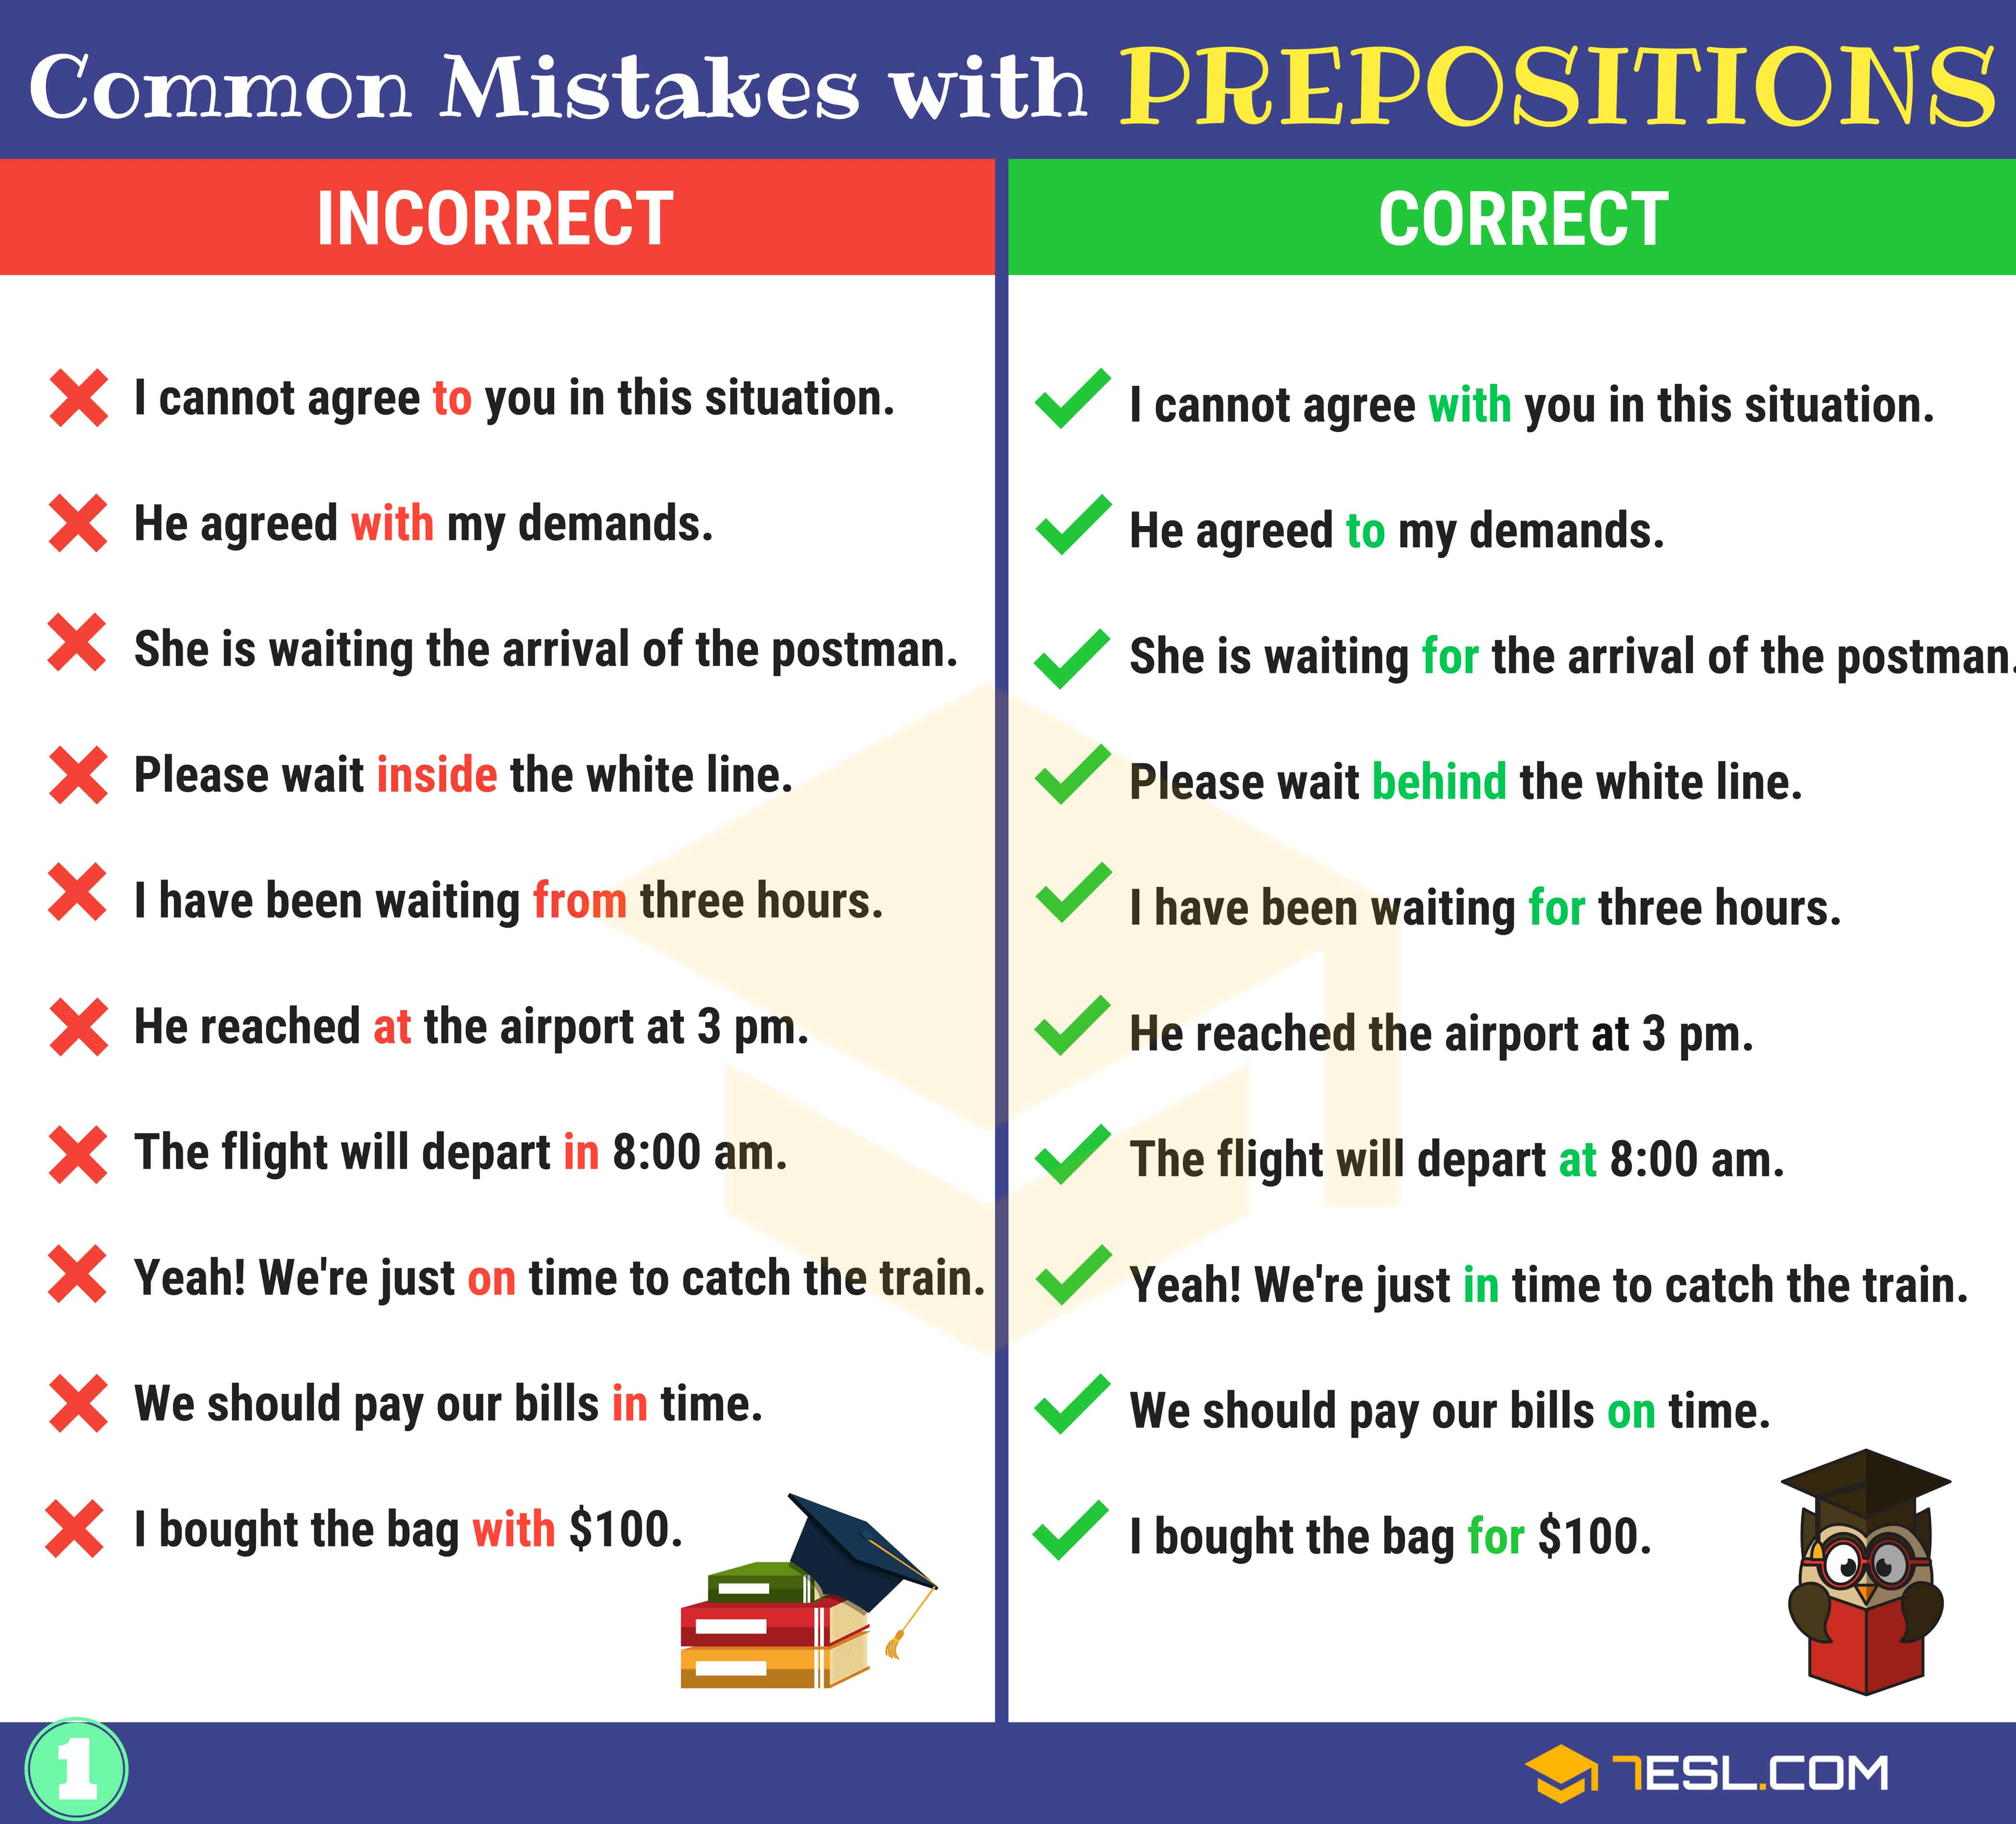 130+ Common MISTAKES With PREPOSITIONS And How To Avoid Them 2